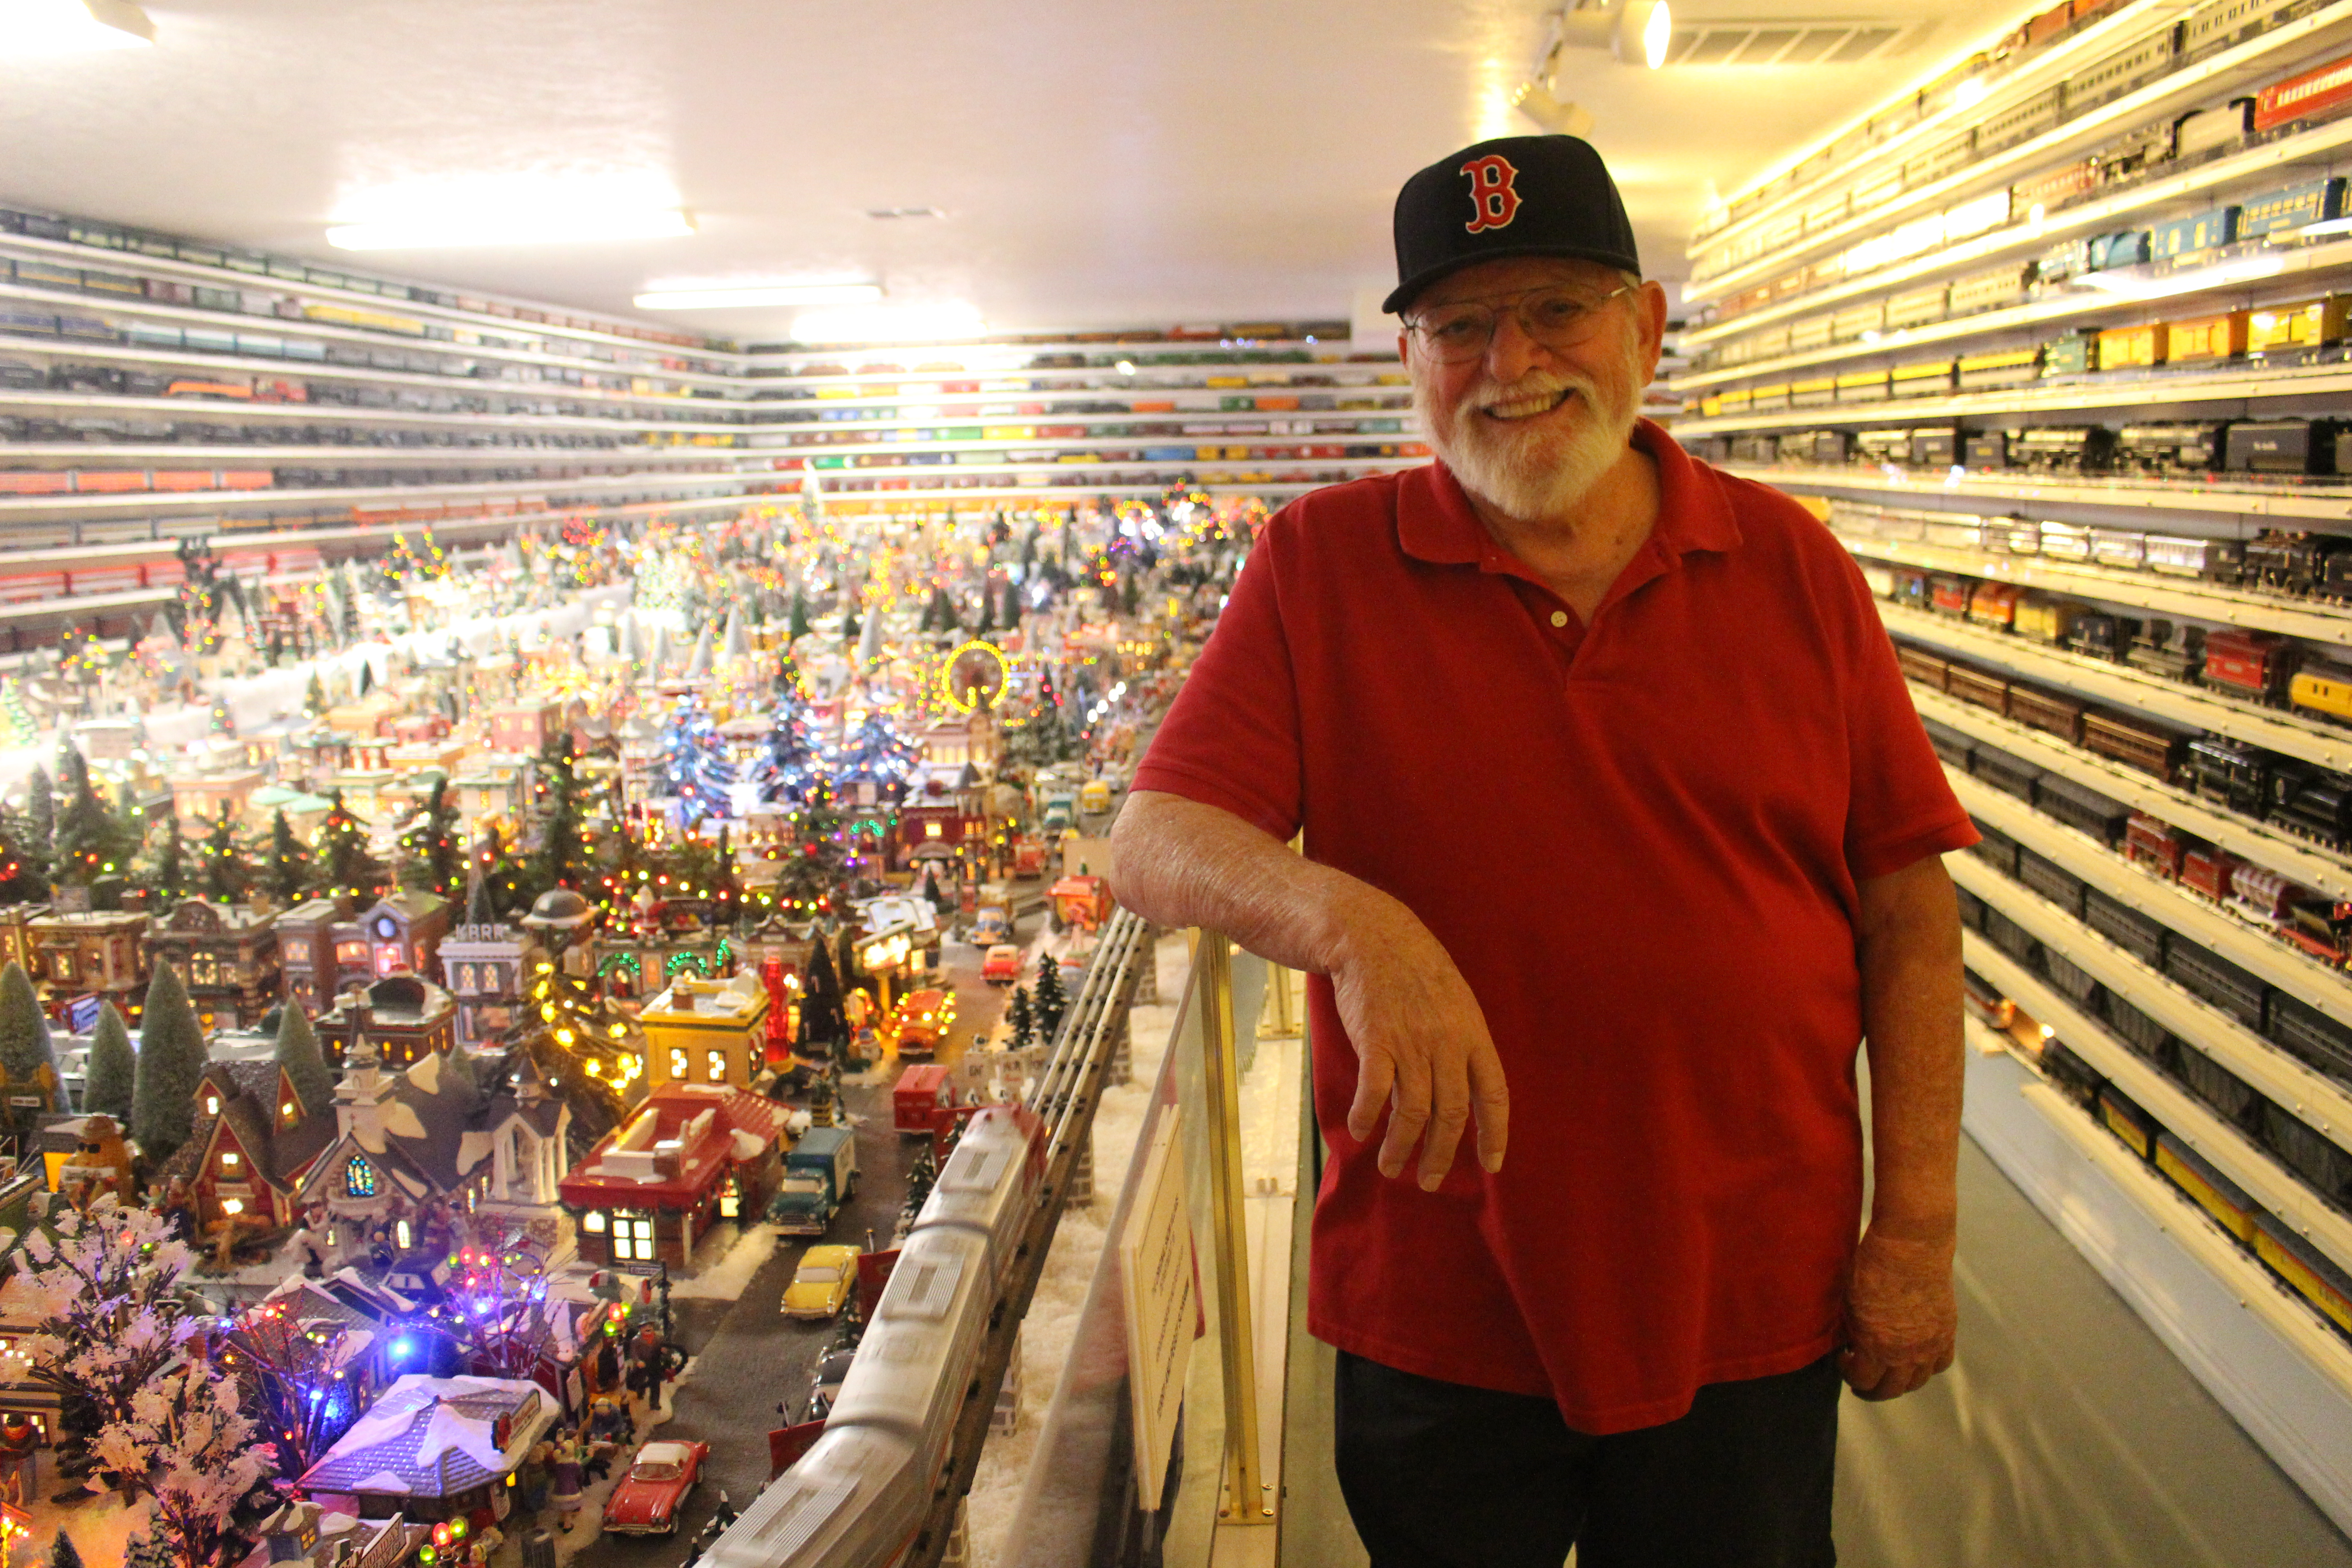 Terry Schramm poses next to his Lionel scale model railroad for the Color Country Model Railroad Tour at his home in St. George, Utah, Nov. 11, 2016 | Photo by Shelden Demke, St. George News